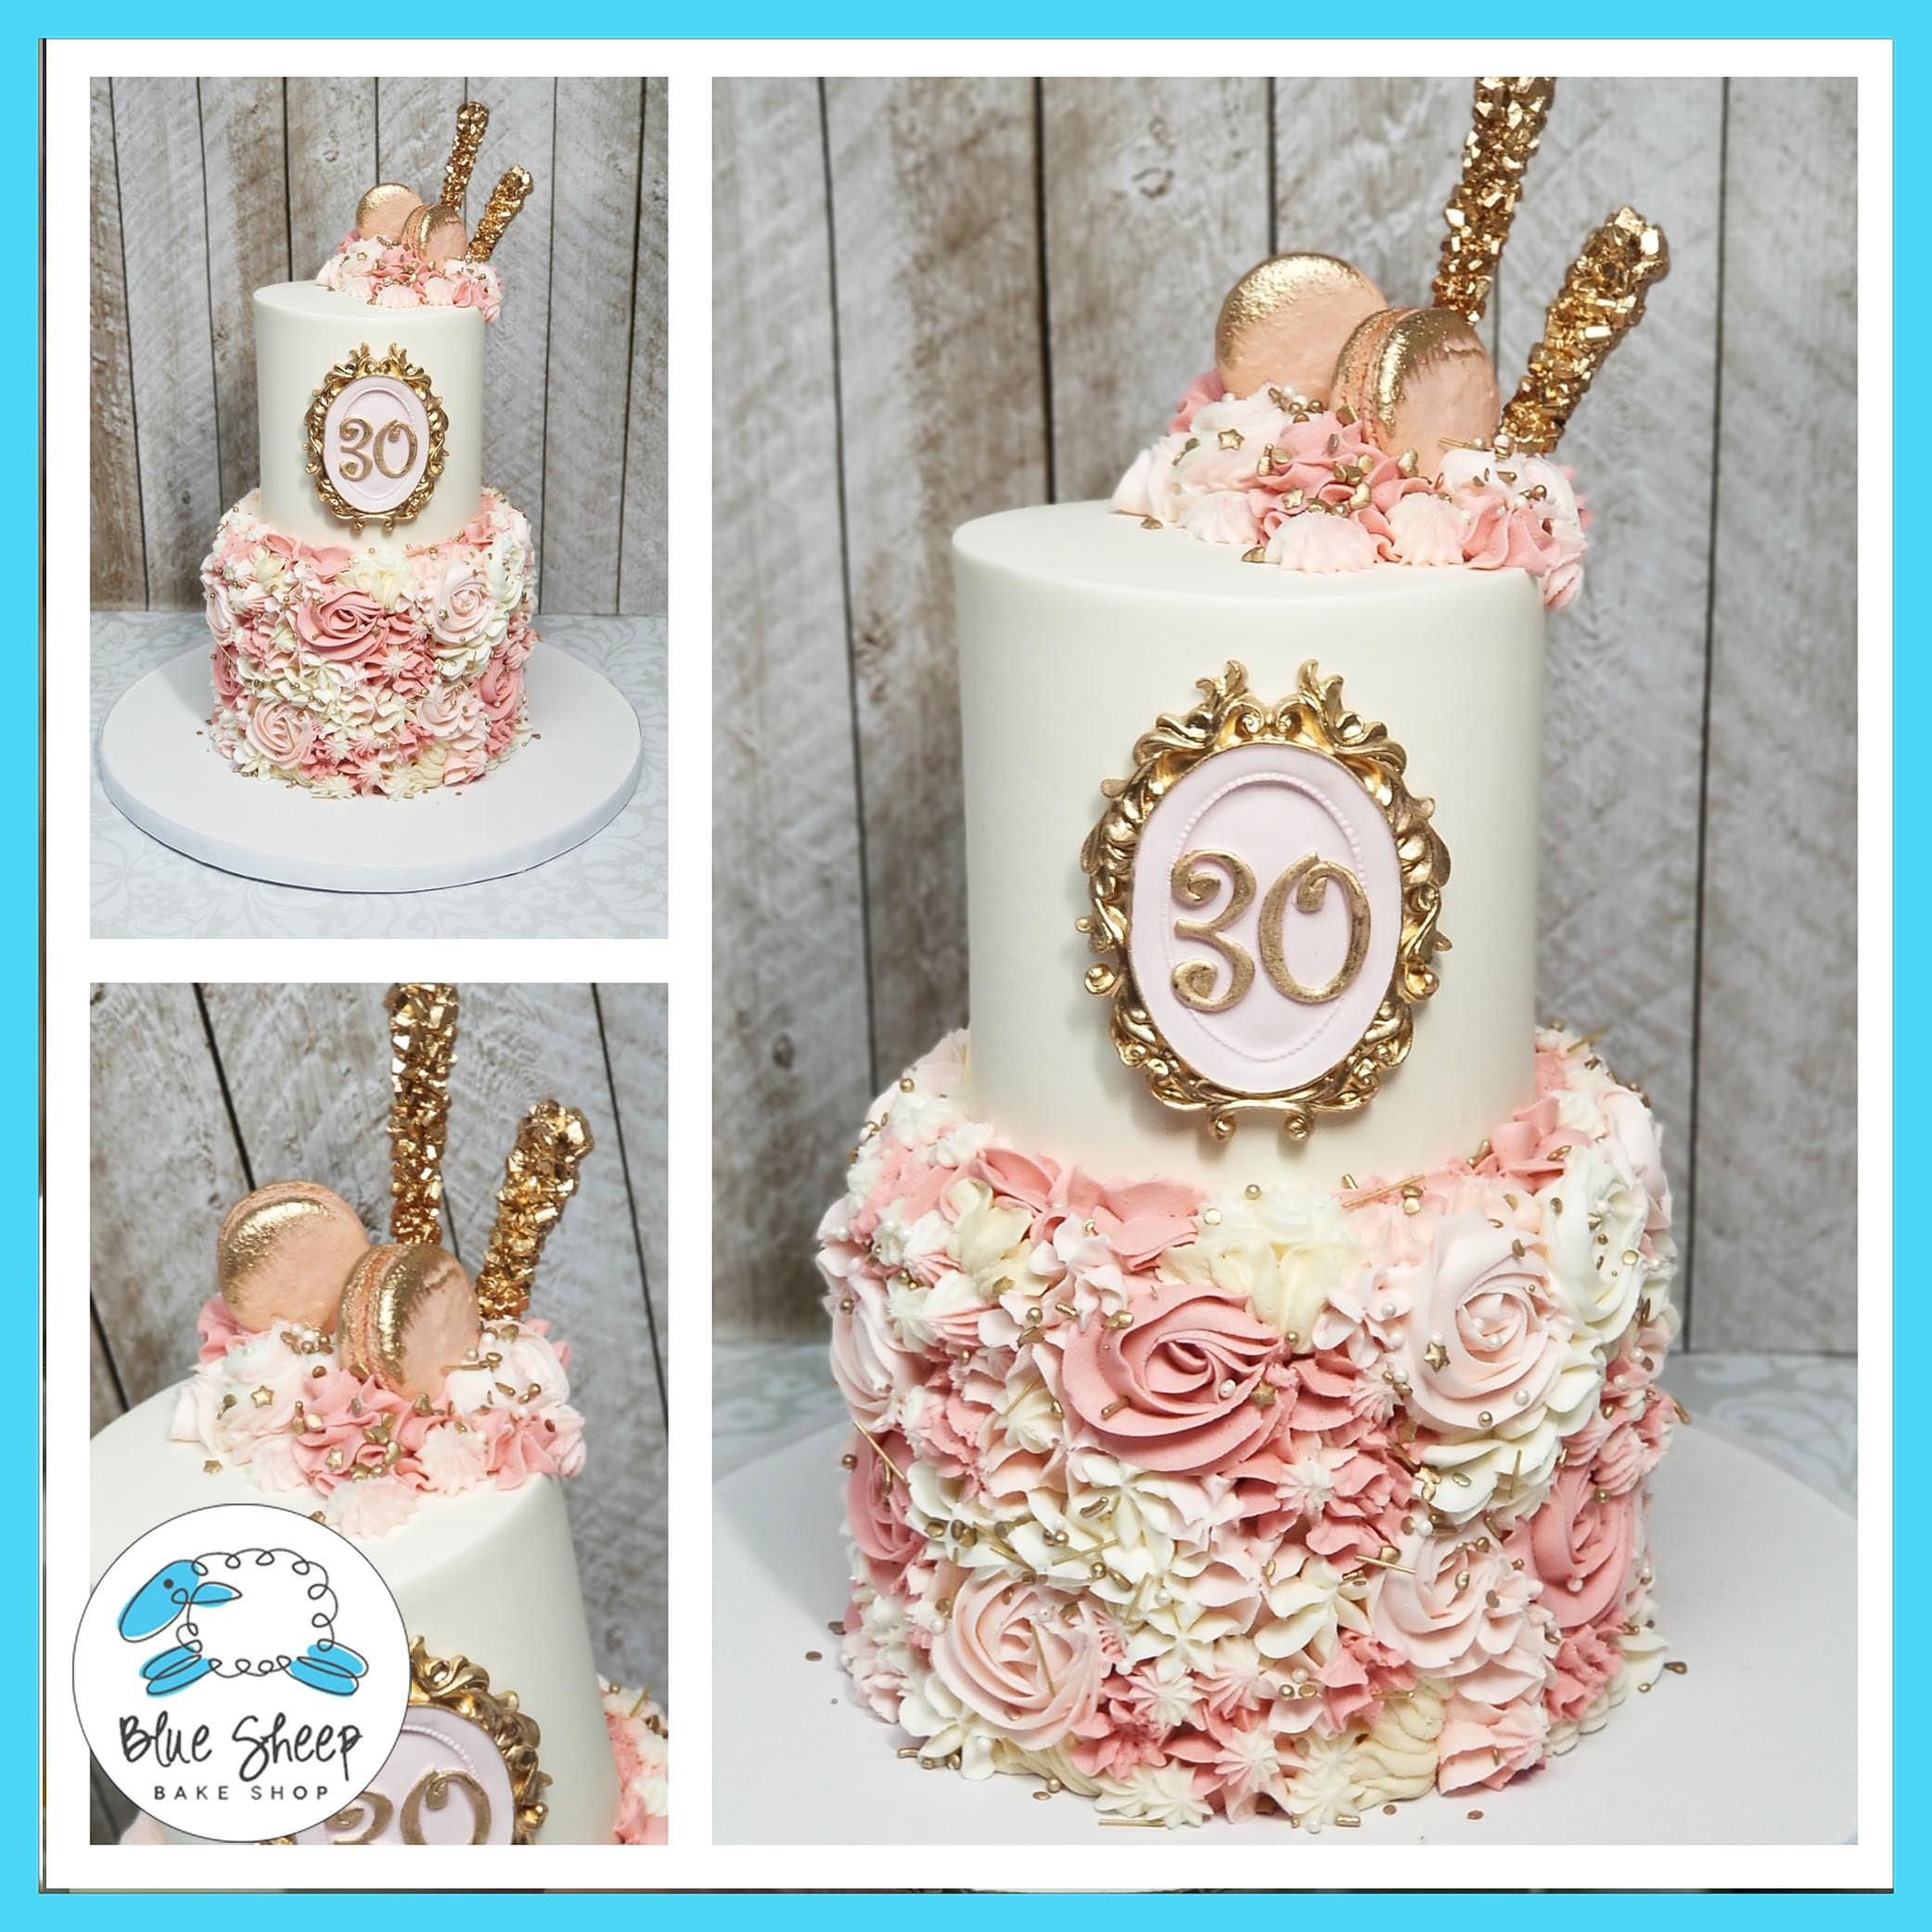 Astounding Pink Buttercream Textures 30Th Birthday Cake Blue Sheep Bake Shop Personalised Birthday Cards Paralily Jamesorg